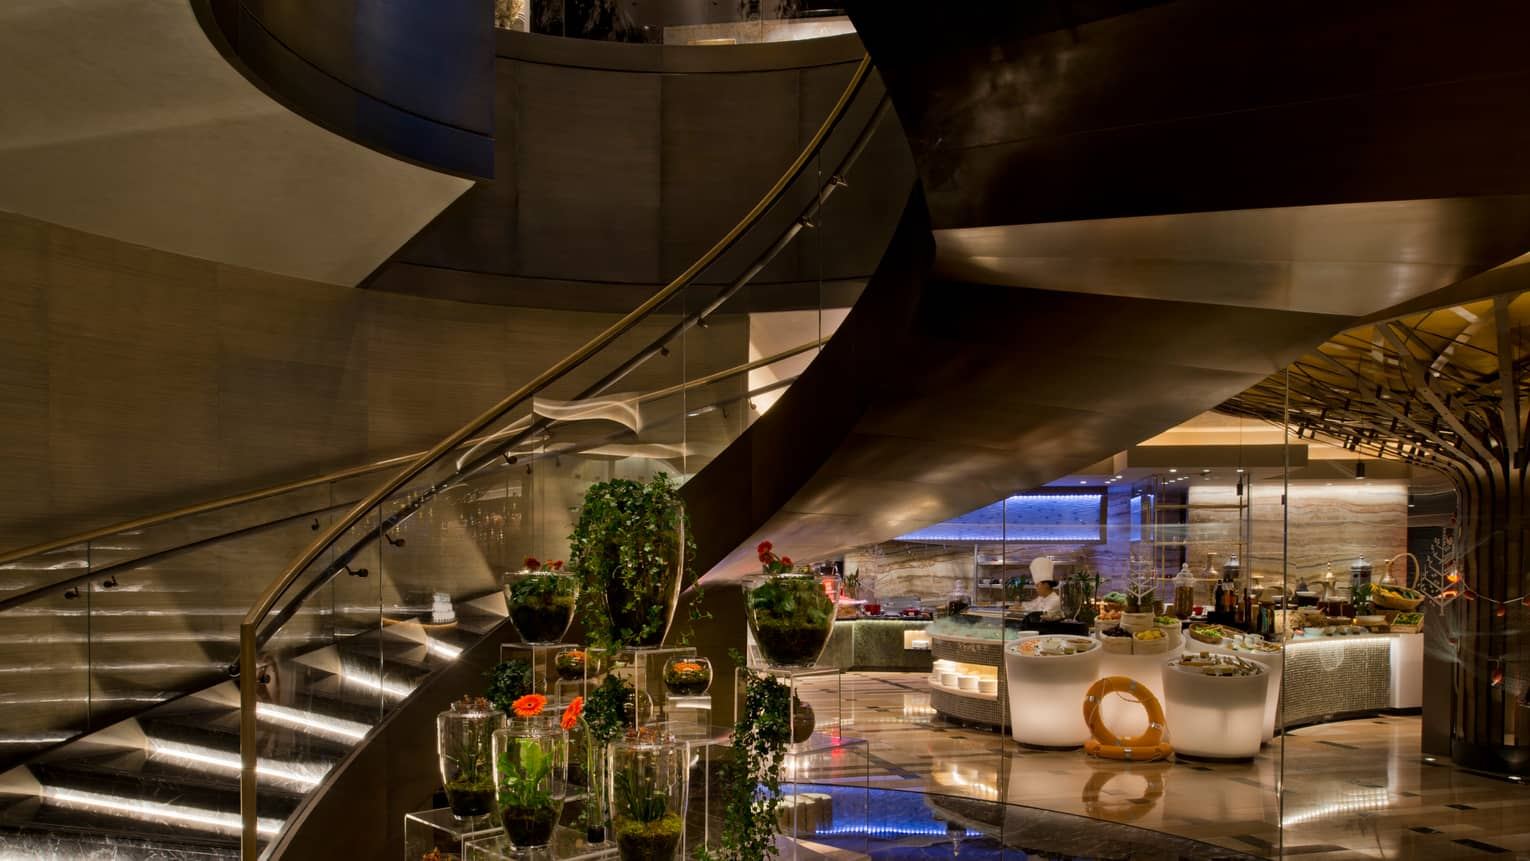 Floral display under spiral black marble staircase with glass railings at Bahrain Bay Kitchen